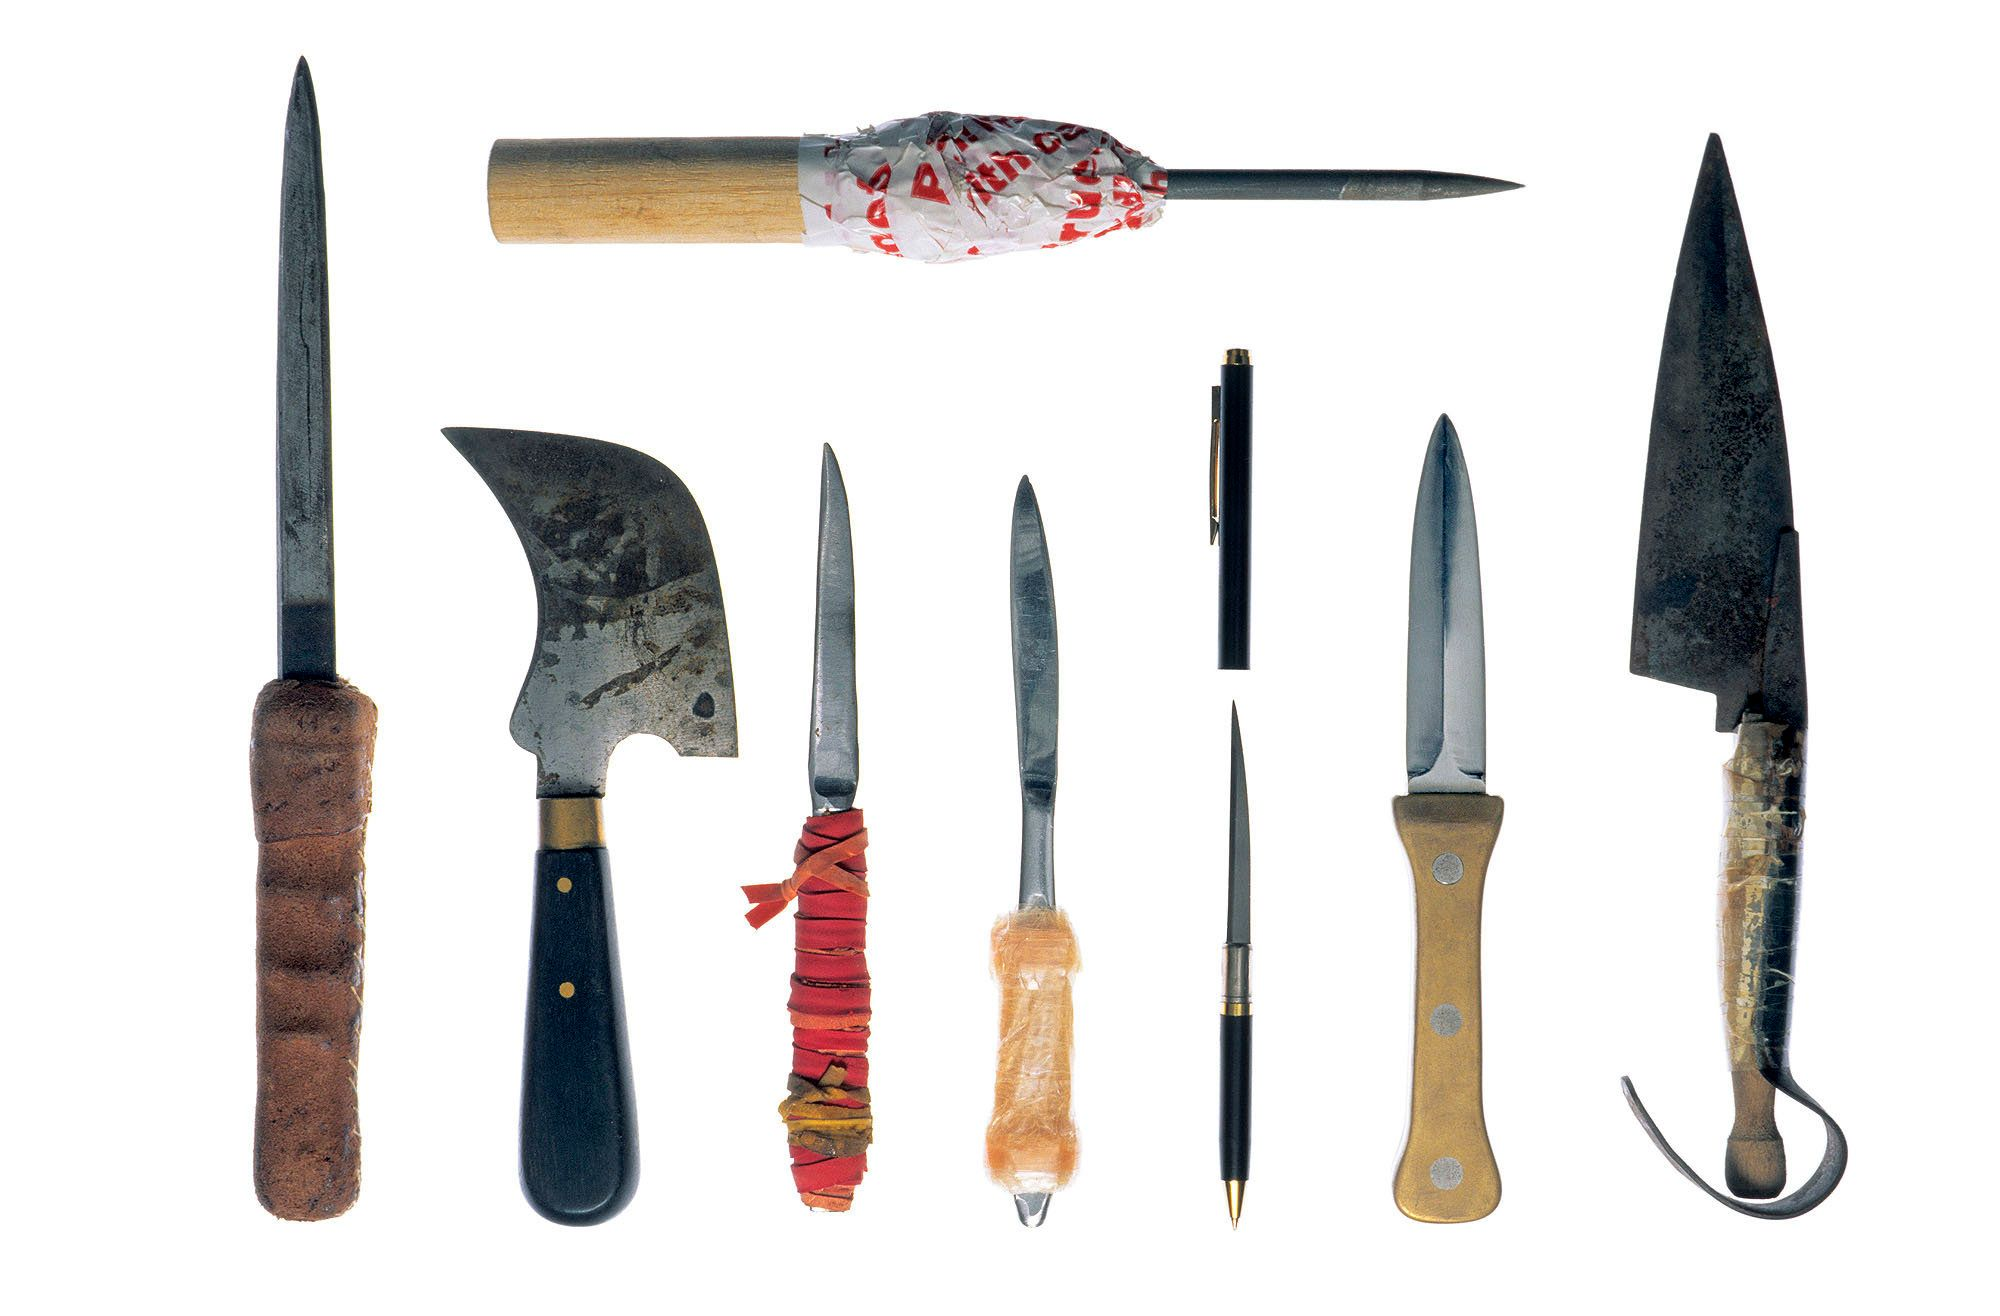 Collection of knives and shivs secured at 'Santa Fu', the prison of Hamburg Fuhlsbüttel, Germany. Inmates of